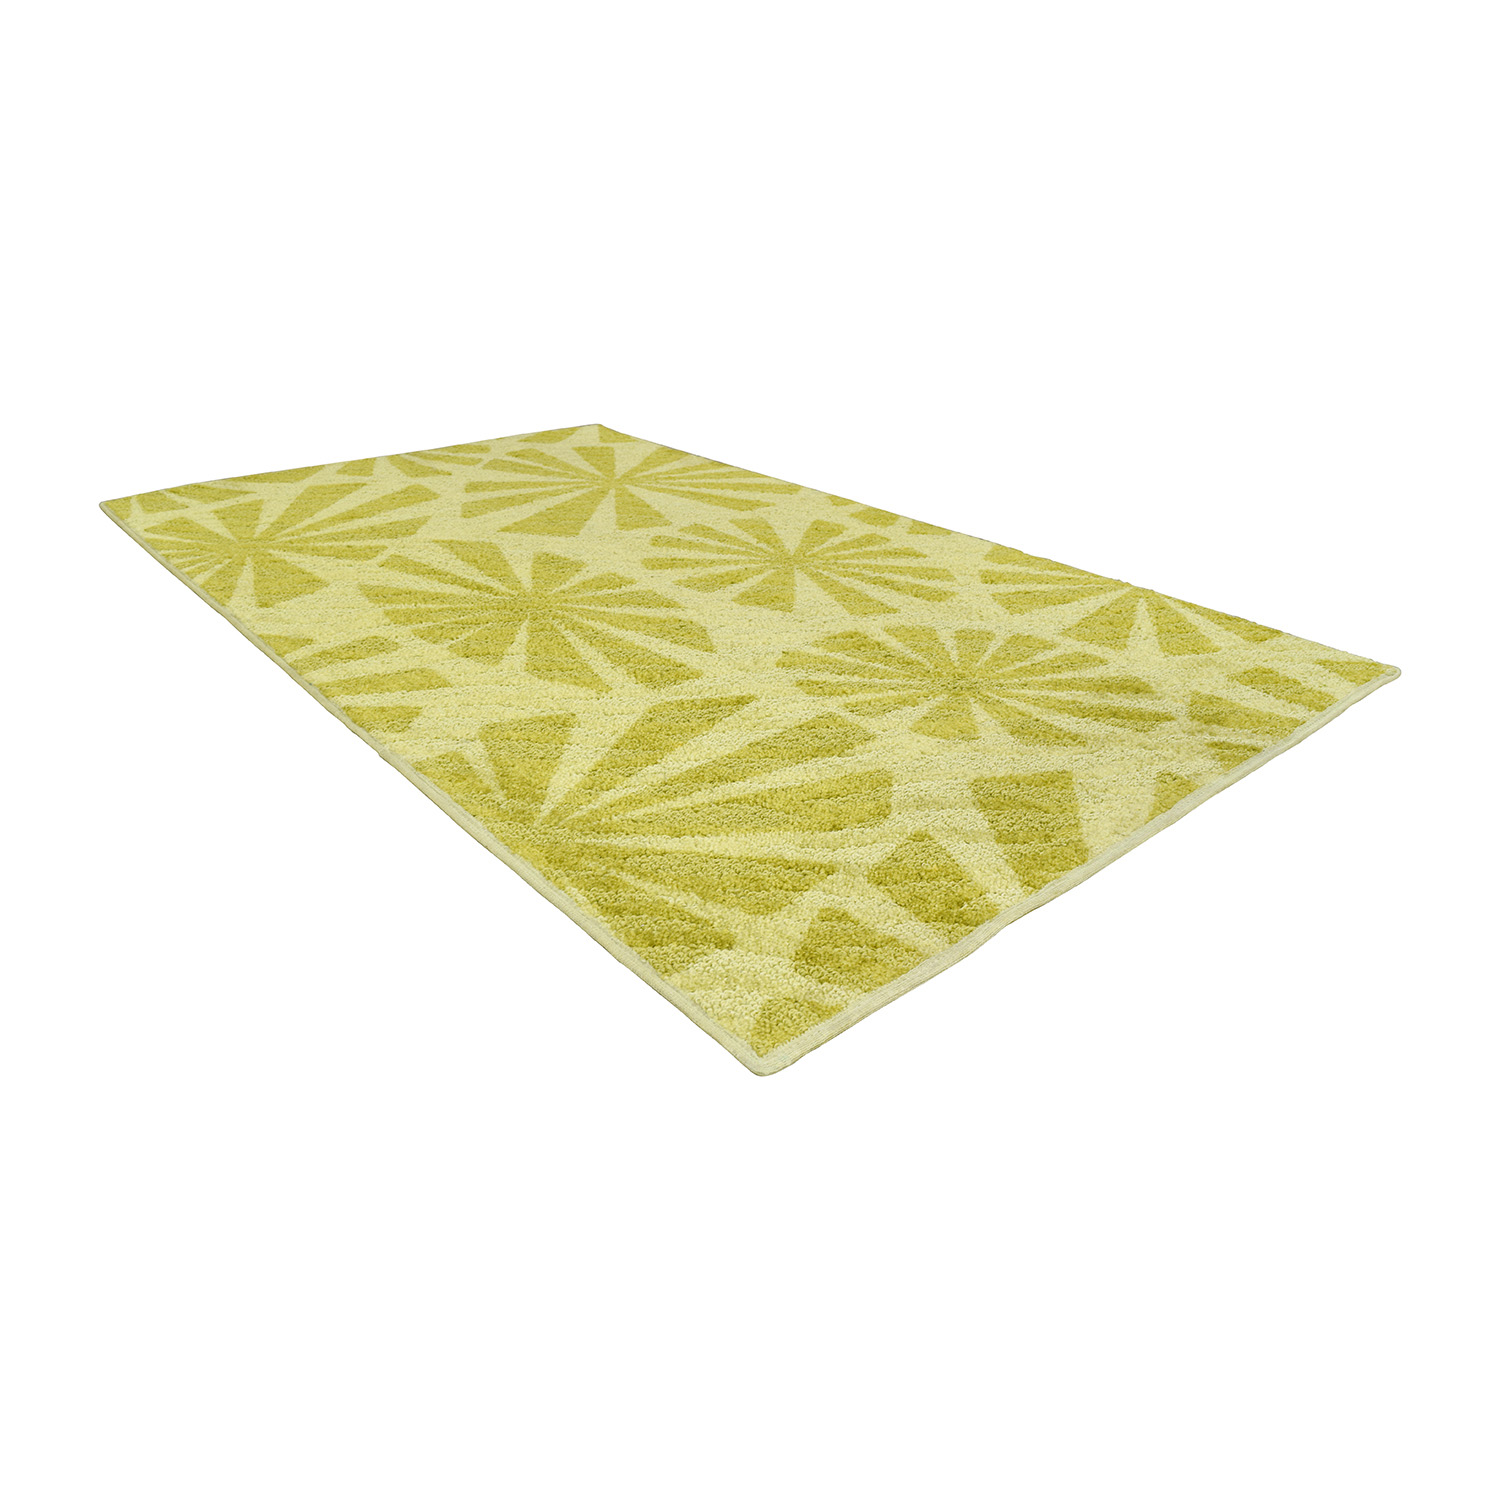 shop Angela Adams for Shaw Living Two-Toned Green Rug Shaw Living